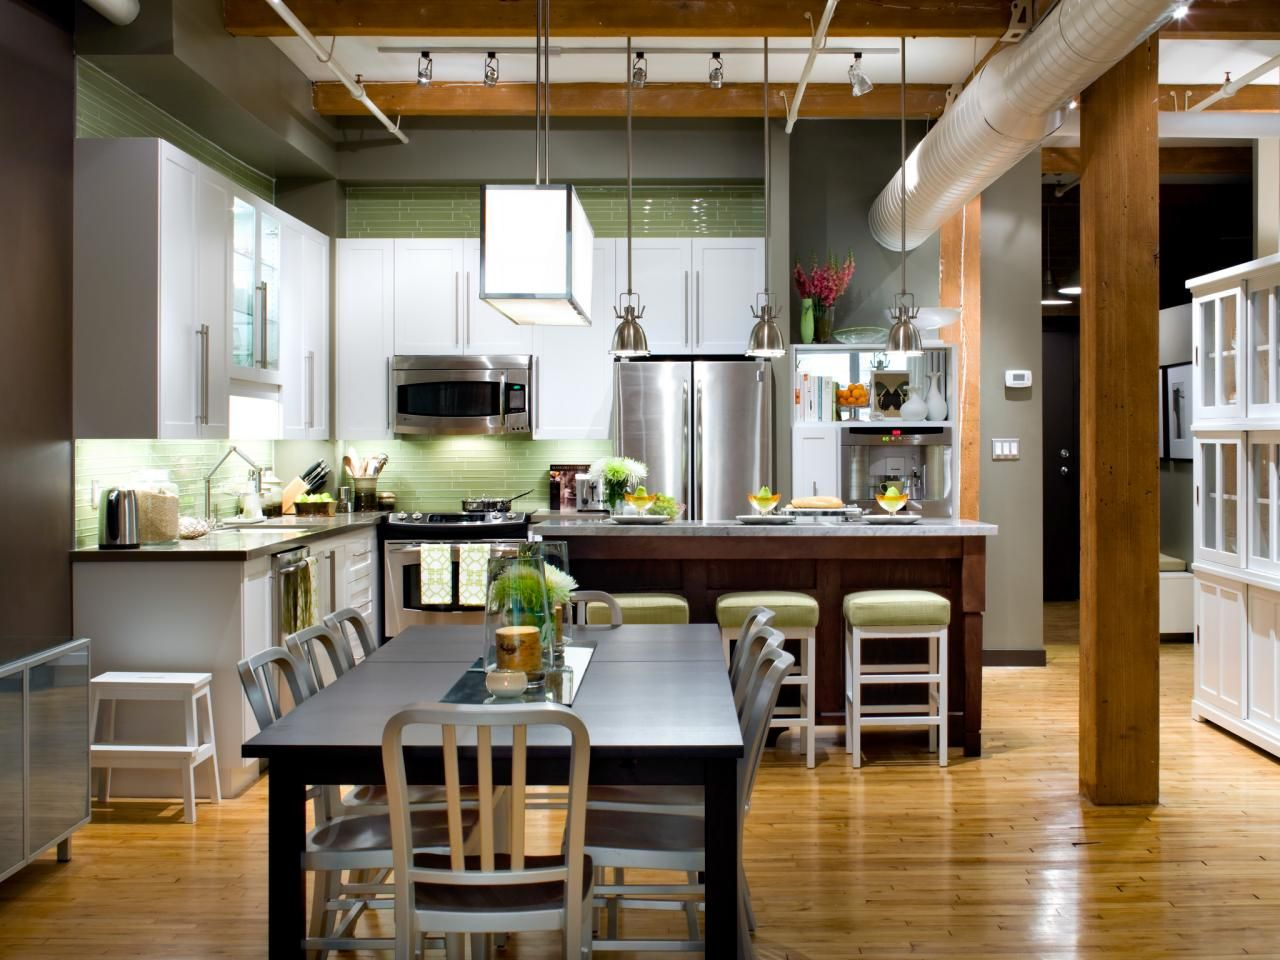 Lshaped Kitchen Design Pictures Ideas & Tips From  Picture Magnificent Small Kitchen Living Room Design Ideas Decorating Inspiration